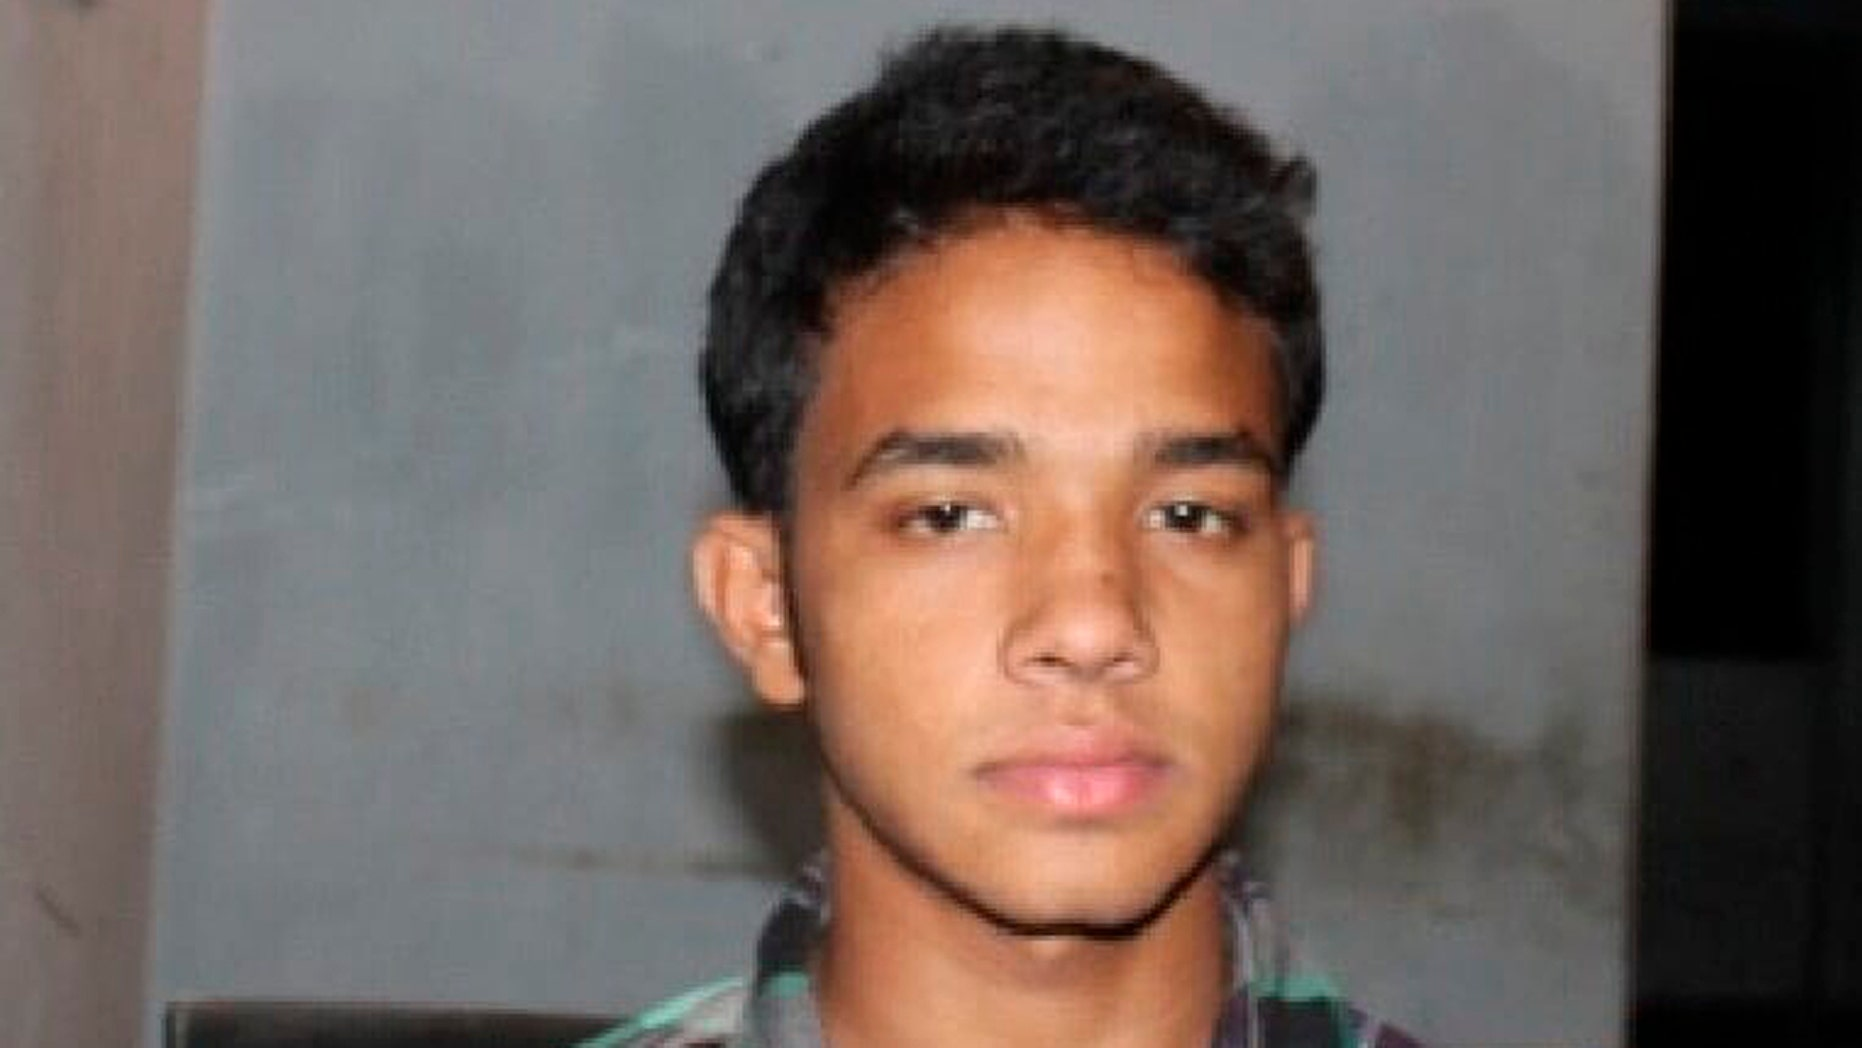 This photograph released Monday by Bangladesh' Rapid Action Battalion (RAB) from their criminal database shows Bangladeshi youth Mohammed Polash Ahmed who was arrested in 2012 by RAB in a kidnapping case.